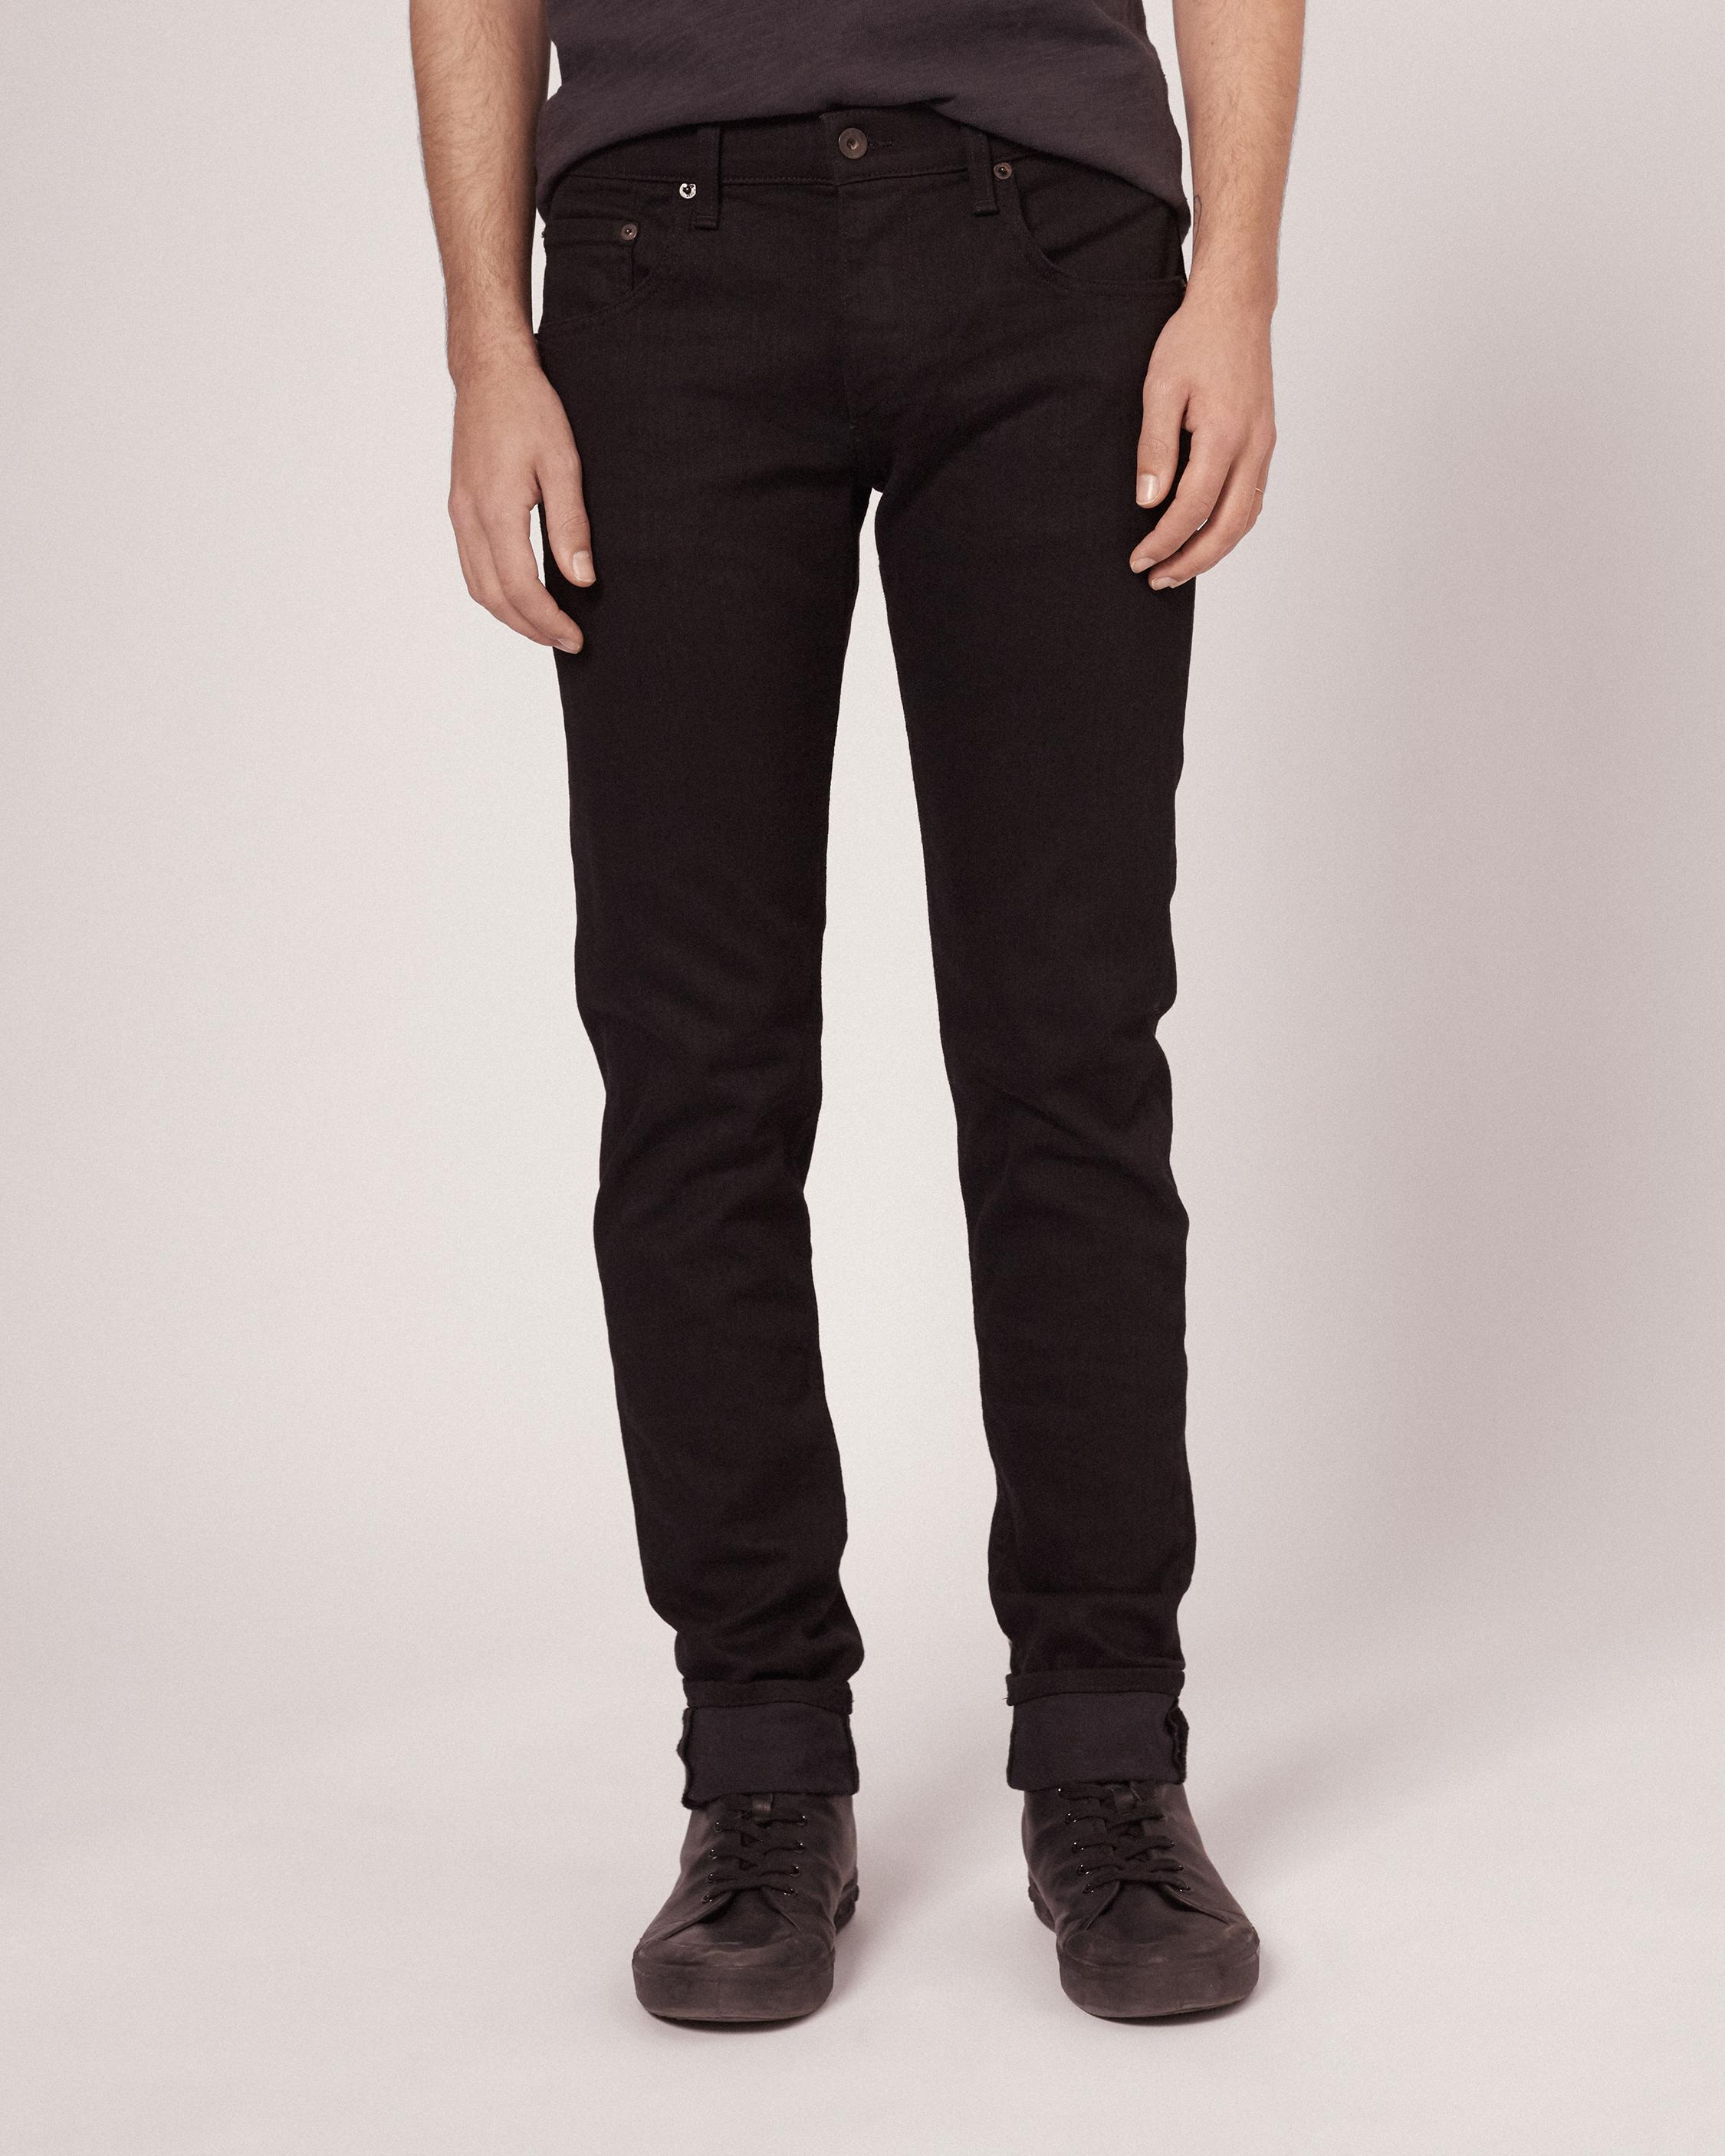 Rag and bone fit 1 black jeans.jpeg